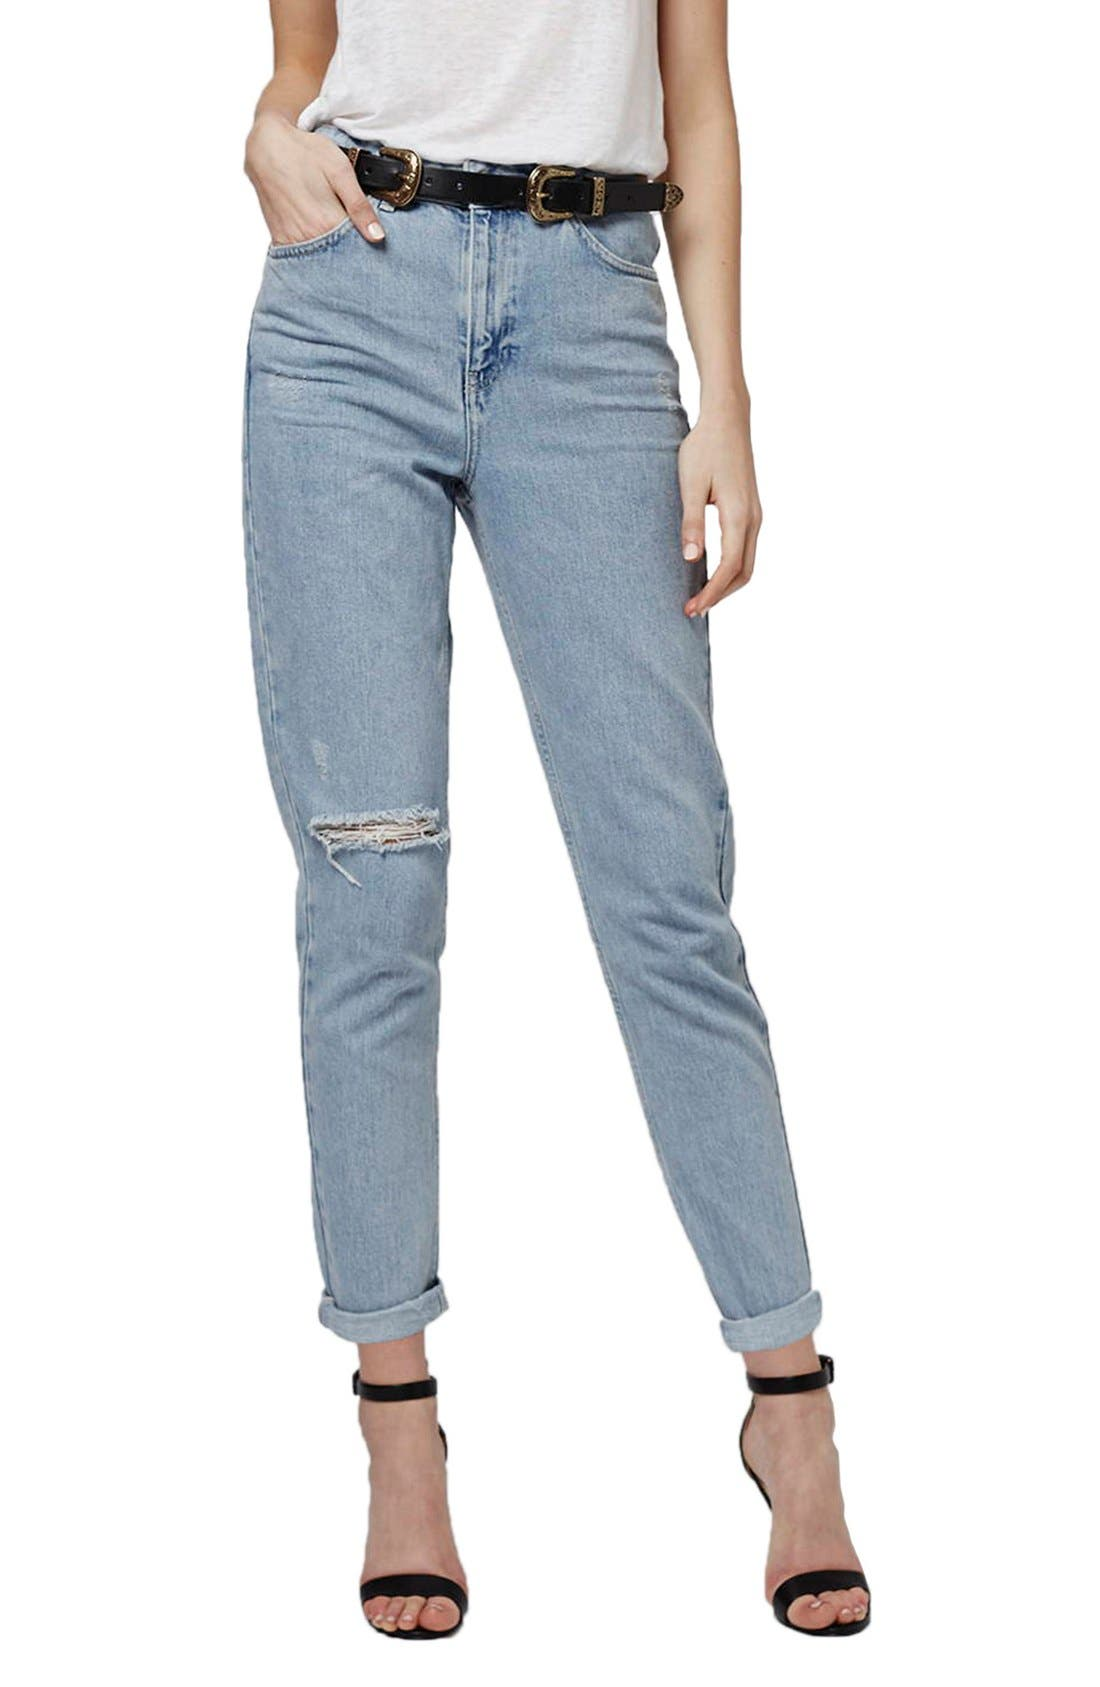 Alternate Image 1 Selected - Topshop High Rise Ripped Mom Jeans (Regular & Petite)